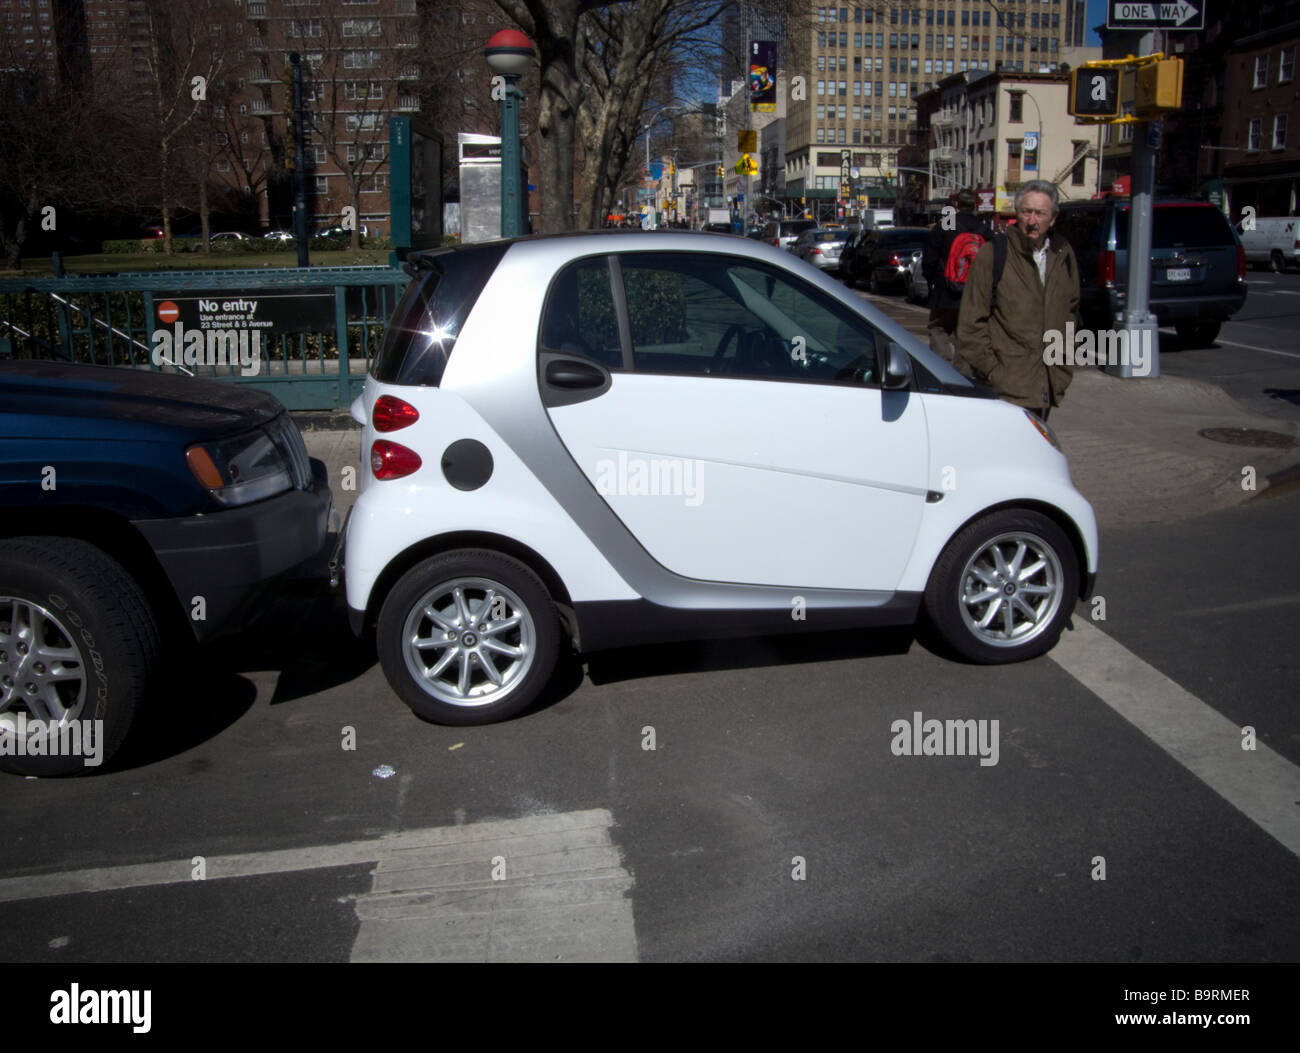 A Two Seat Smart Car Manufactured By Daimler Is Seen Squeezed Into A